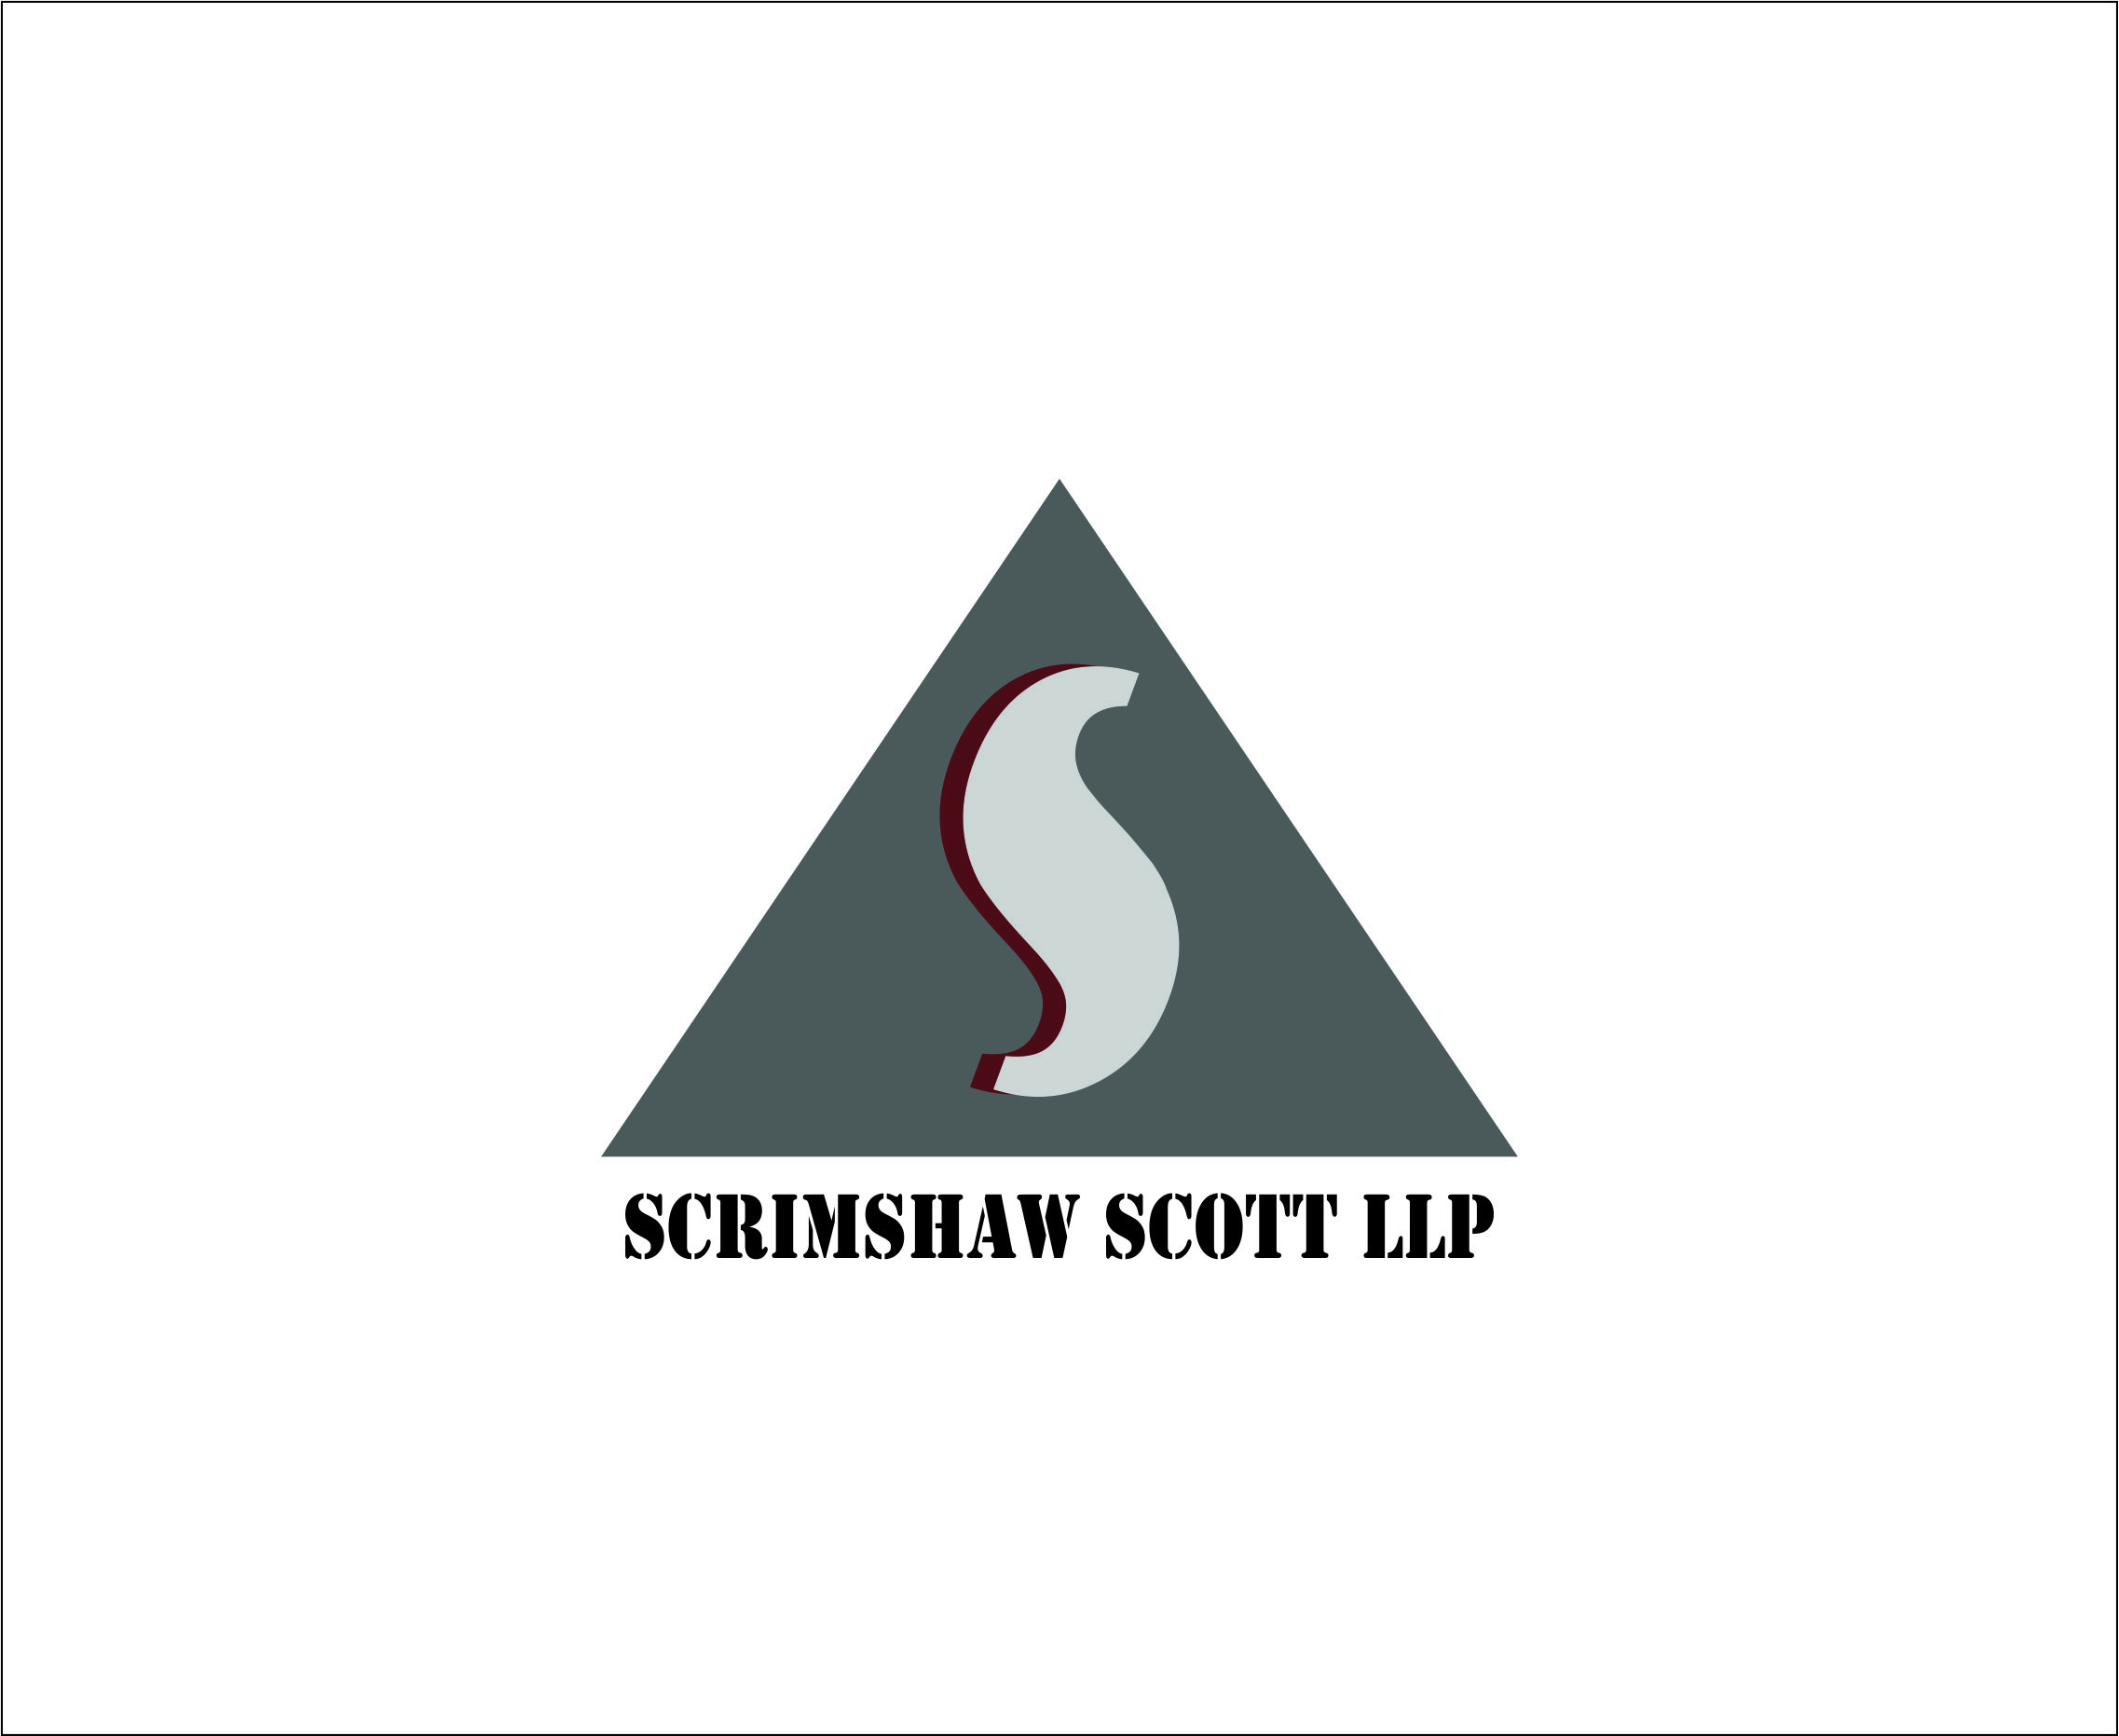 Logo Design by Agus Martoyo - Entry No. 91 in the Logo Design Contest Creative Logo Design for Scrimshaw Scott LLP.